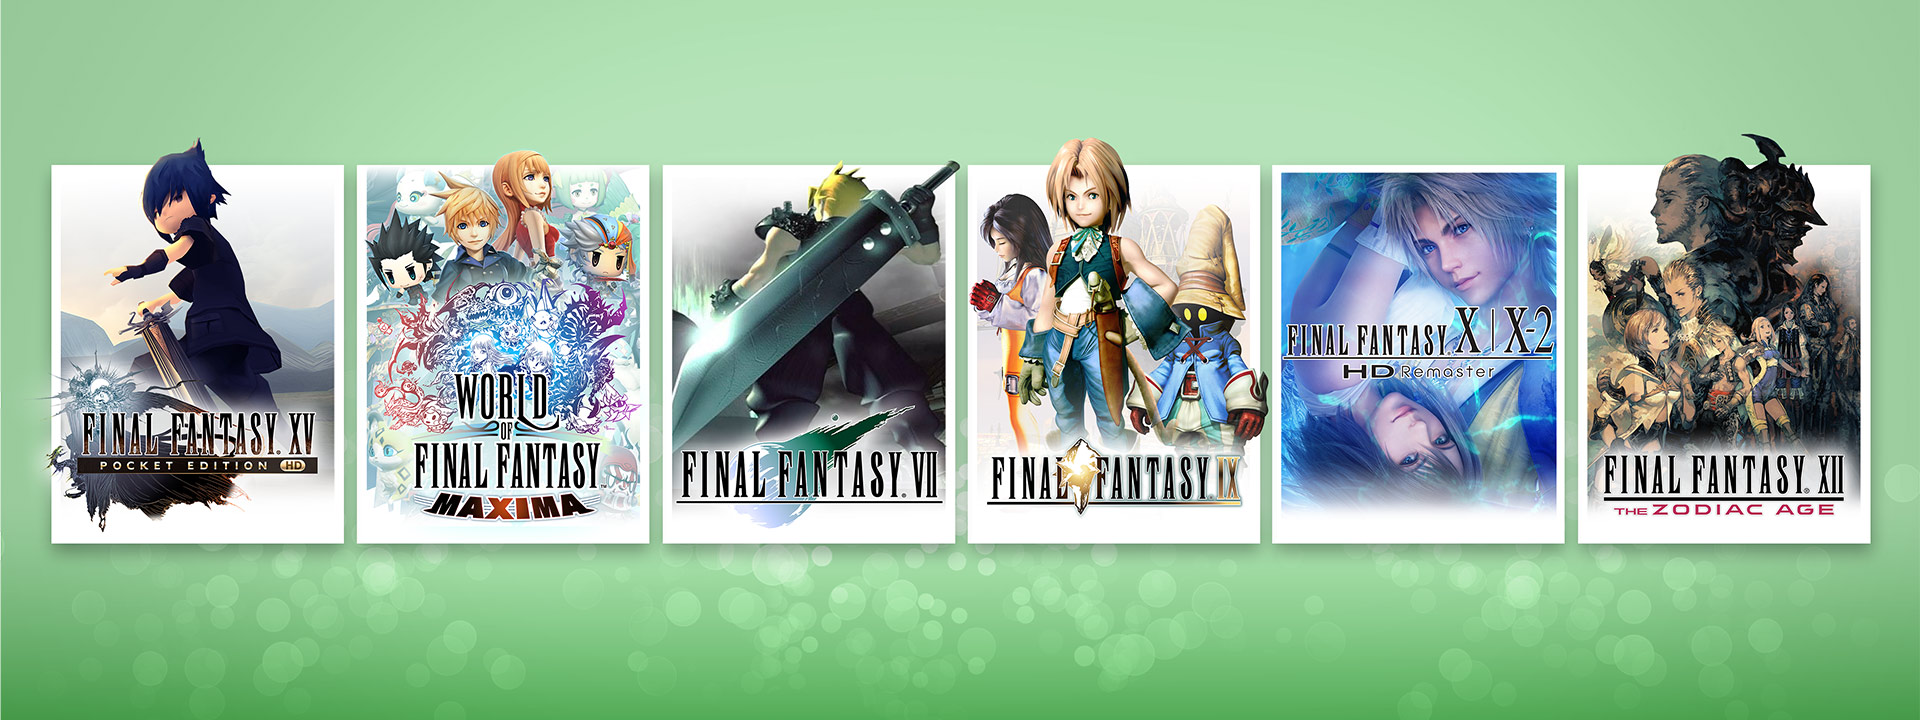 Box art imagery for FINAL FANTASY XV POCKET EDITION HD, WORLD OF FINAL FANTASY MAXIMA, FINAL FANTASY VII, FINAL FANTASY IX, FINAL FANTASY X | X-2 HD Remaster, and FINAL FANTASY XII THE ZODIAC AGE